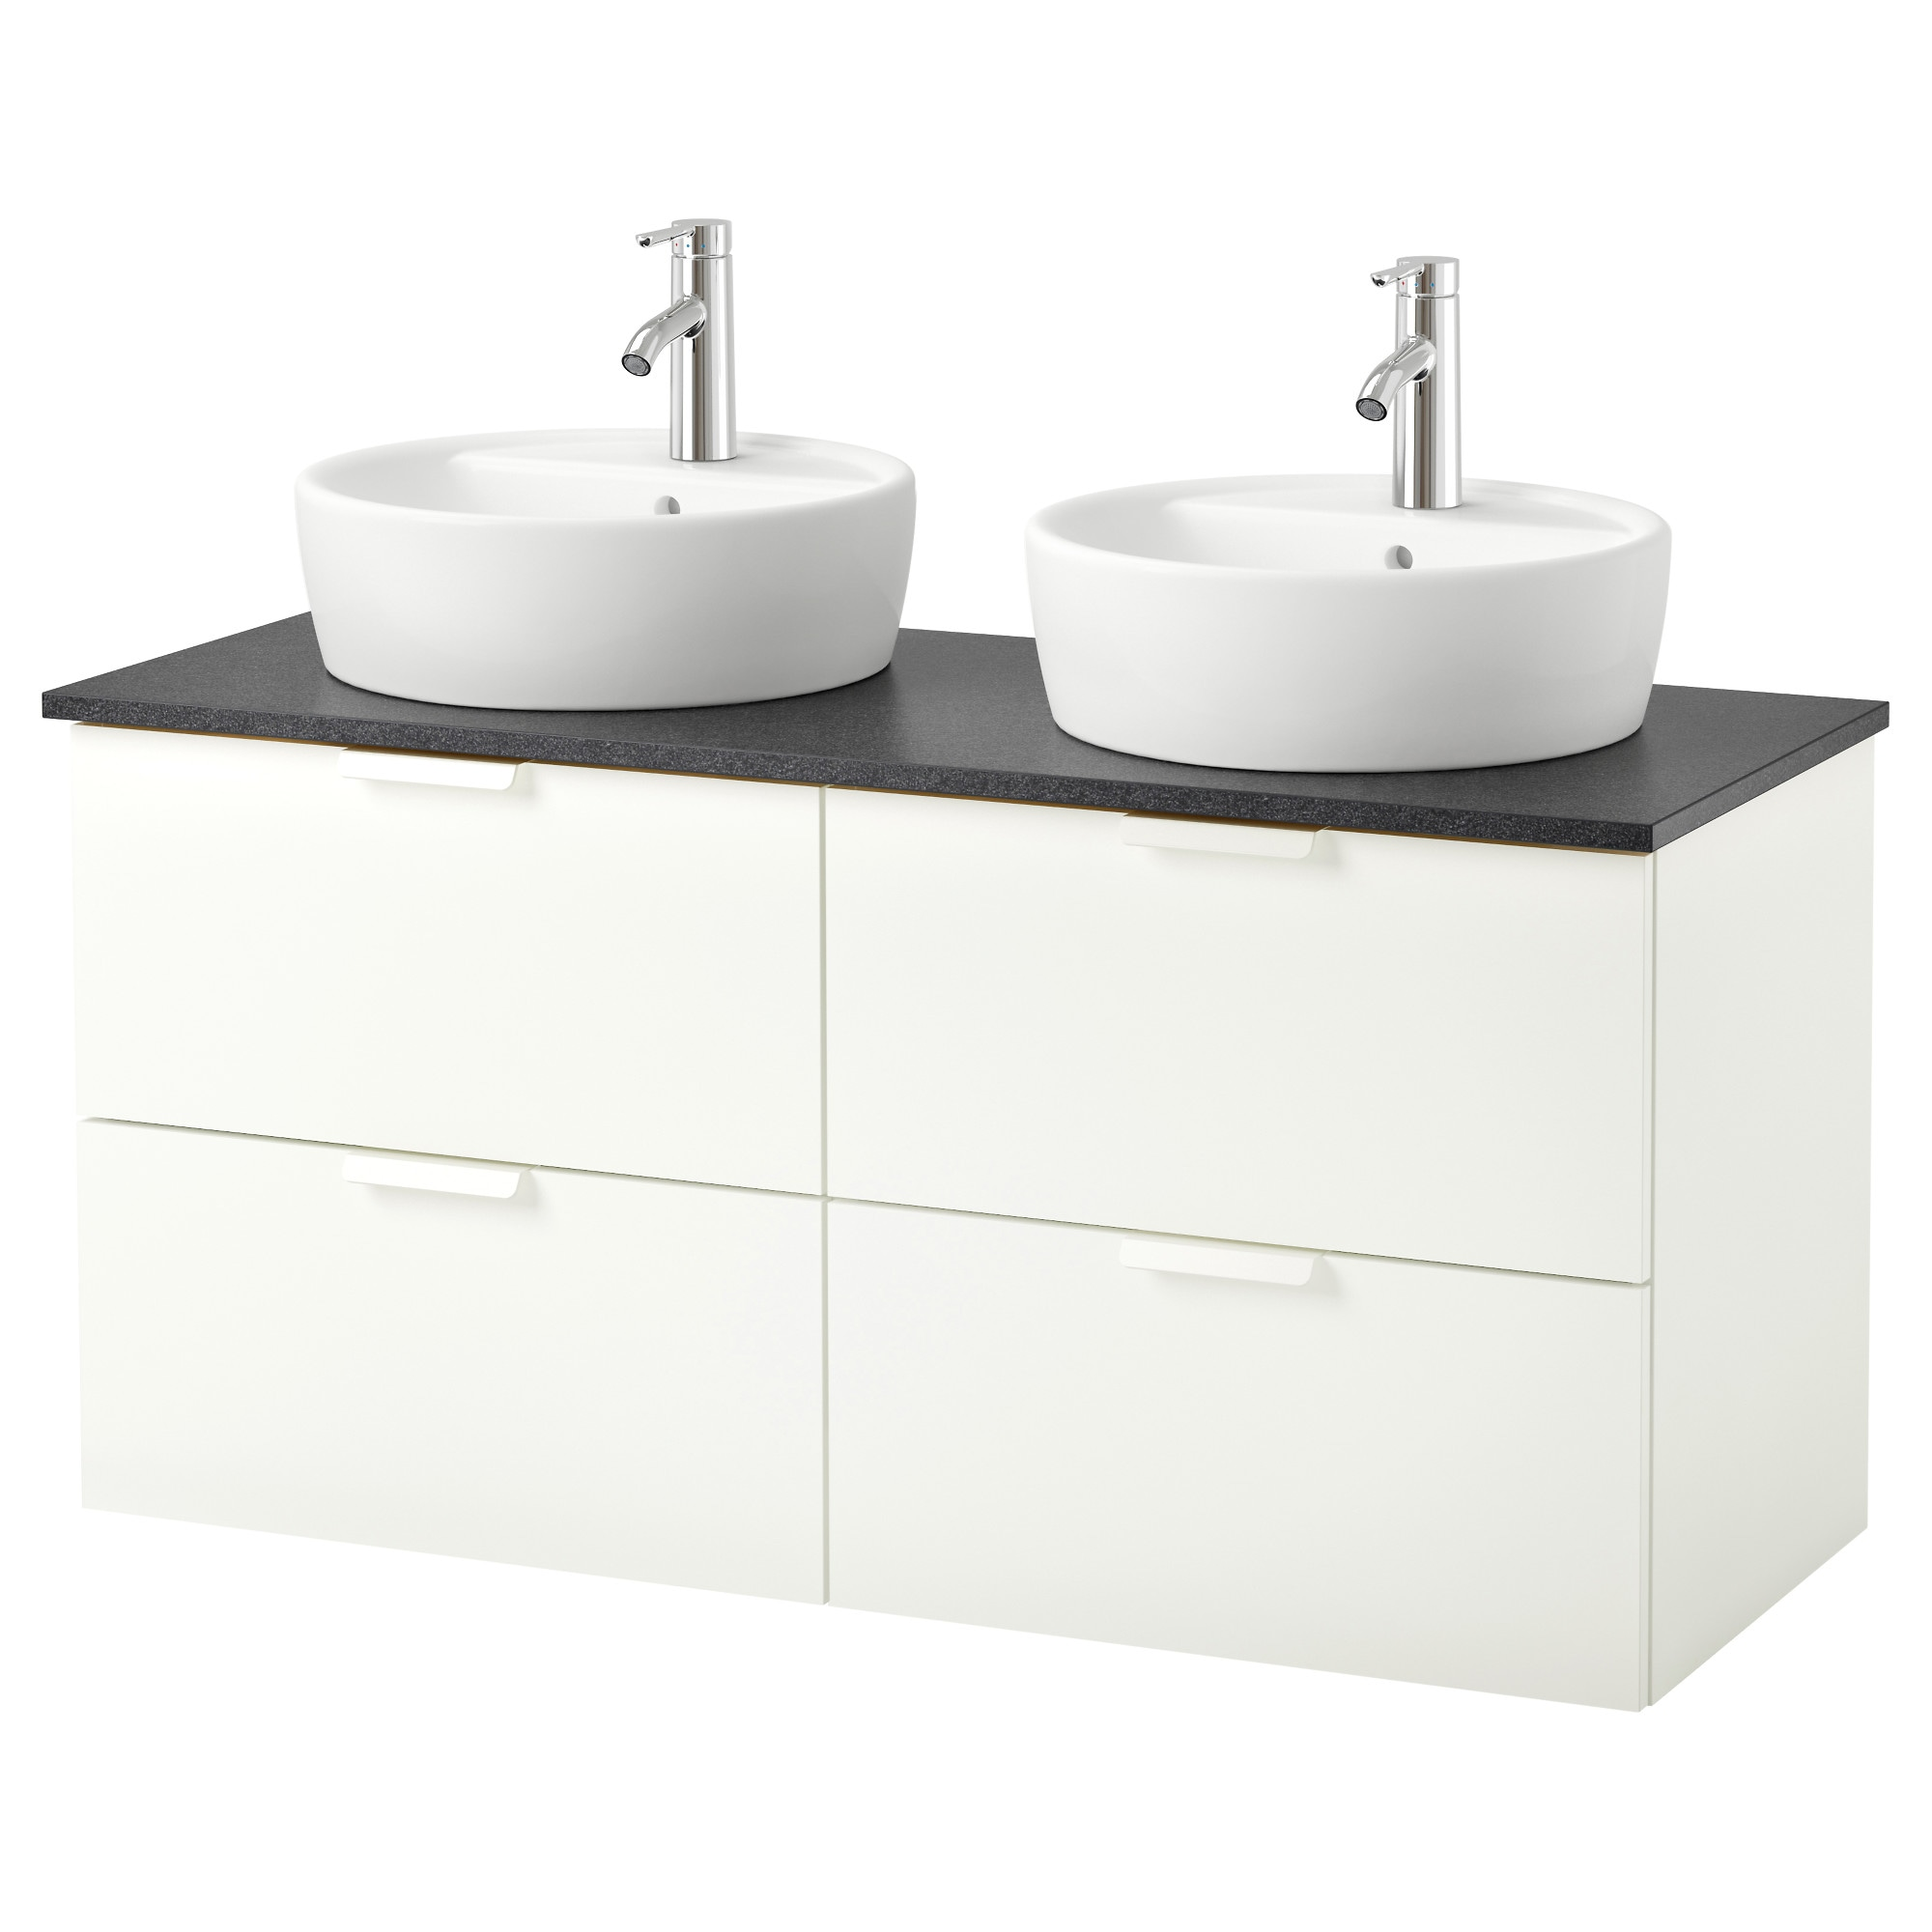 Kit bagno ikea for - Ikea bagno planner ...